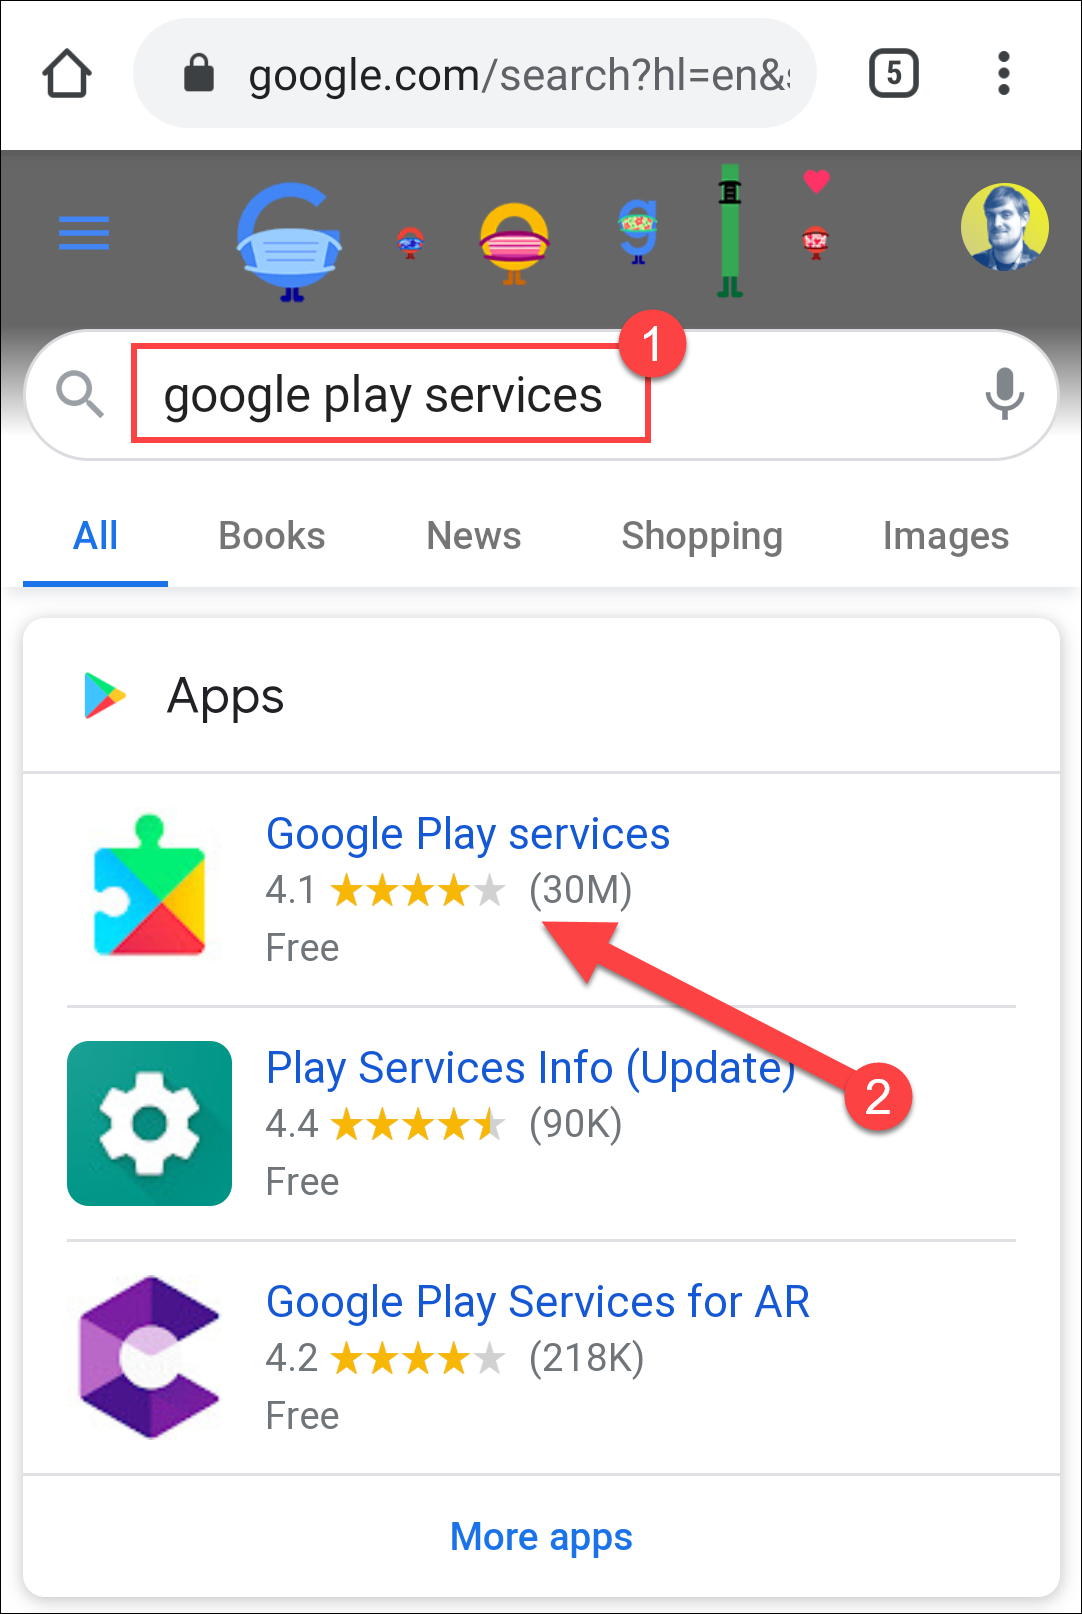 google play services search